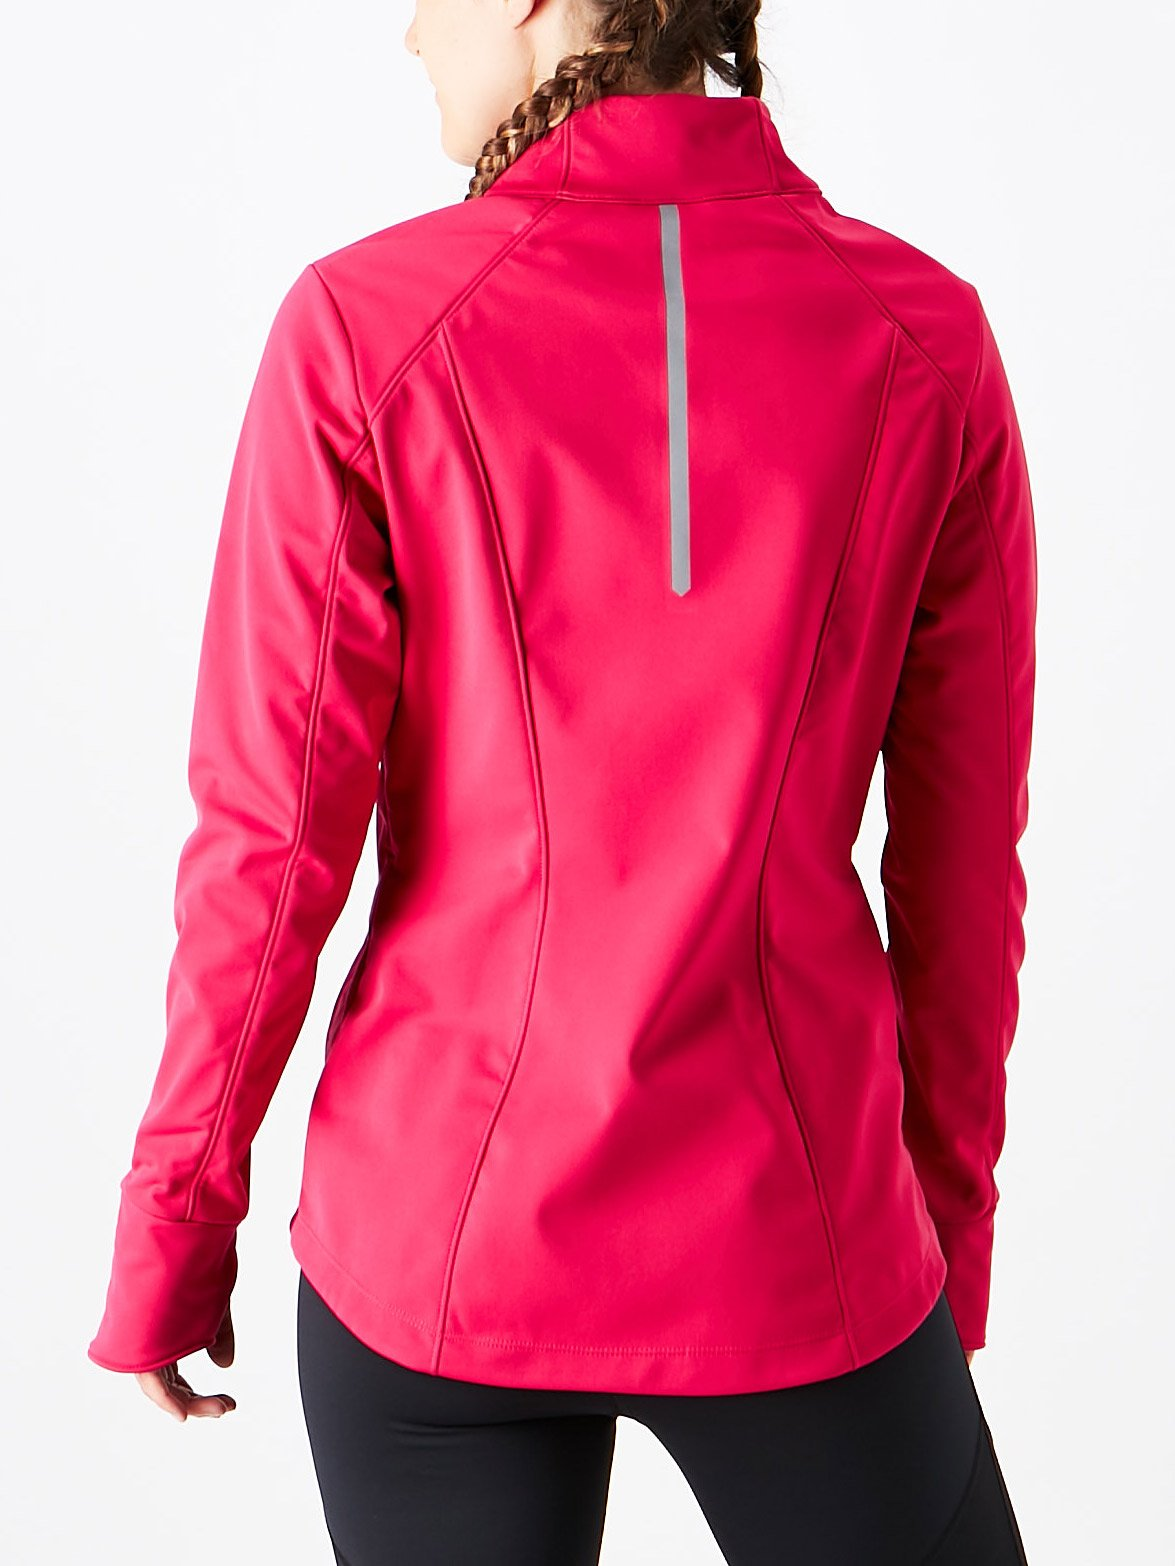 ASICS Womens Softshell Jacket, Performance Black, Small by ASICS (Image #4)